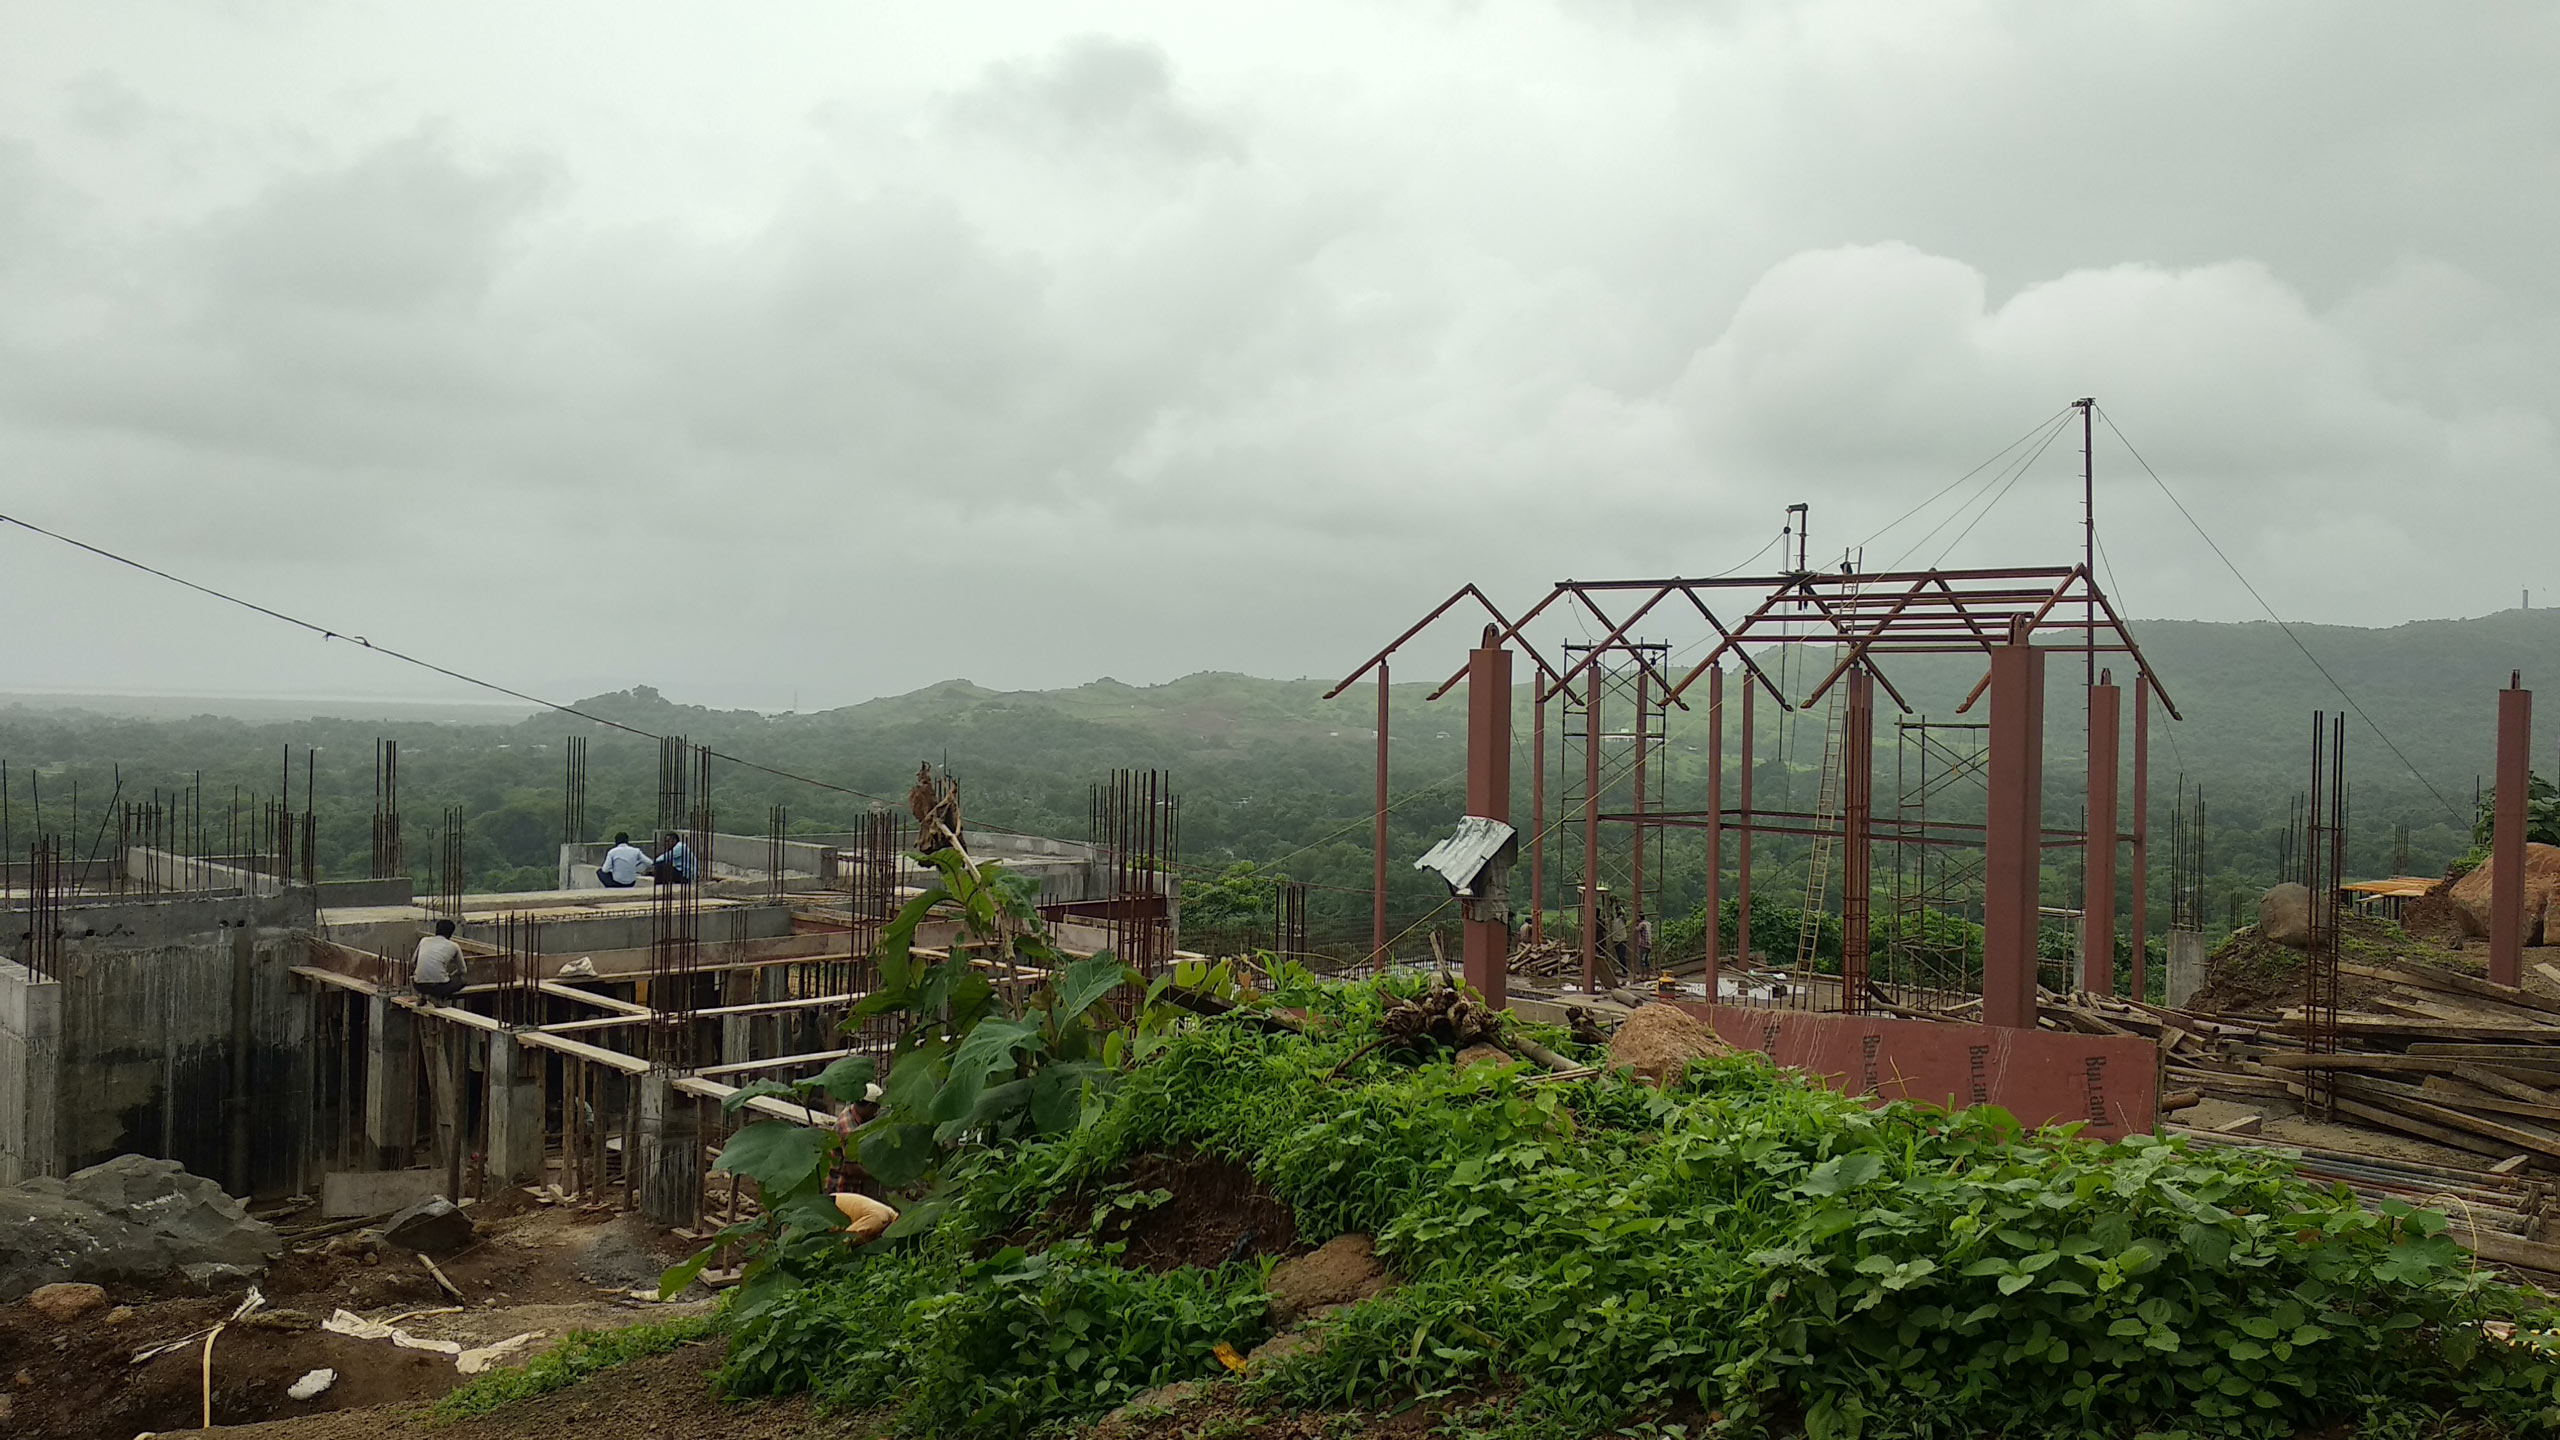 The Plantation Retreat under construction in alibaug